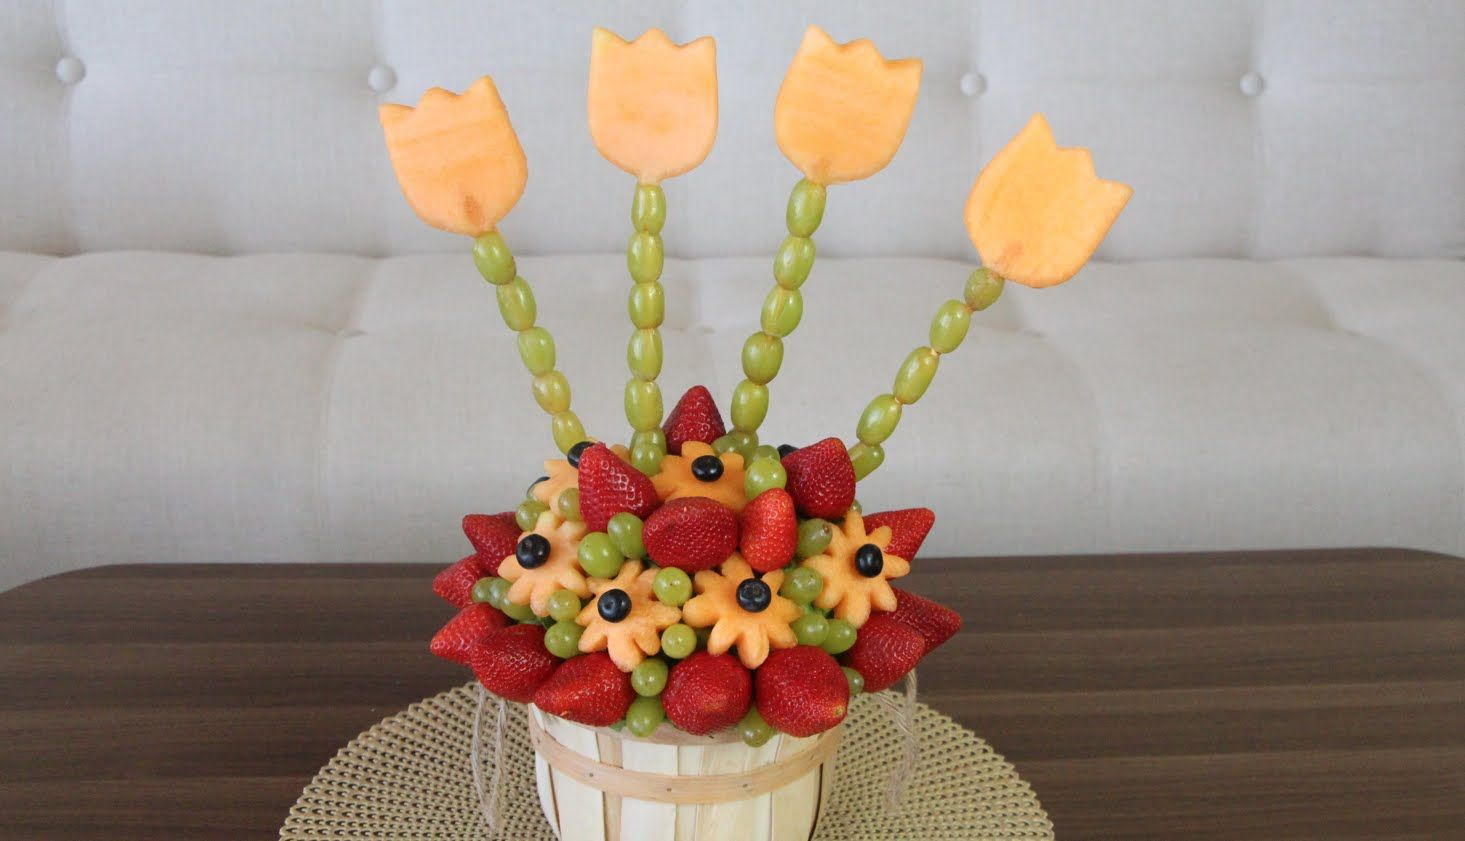 diy- edible fruit arrangement | janie | pinterest | edible fruit